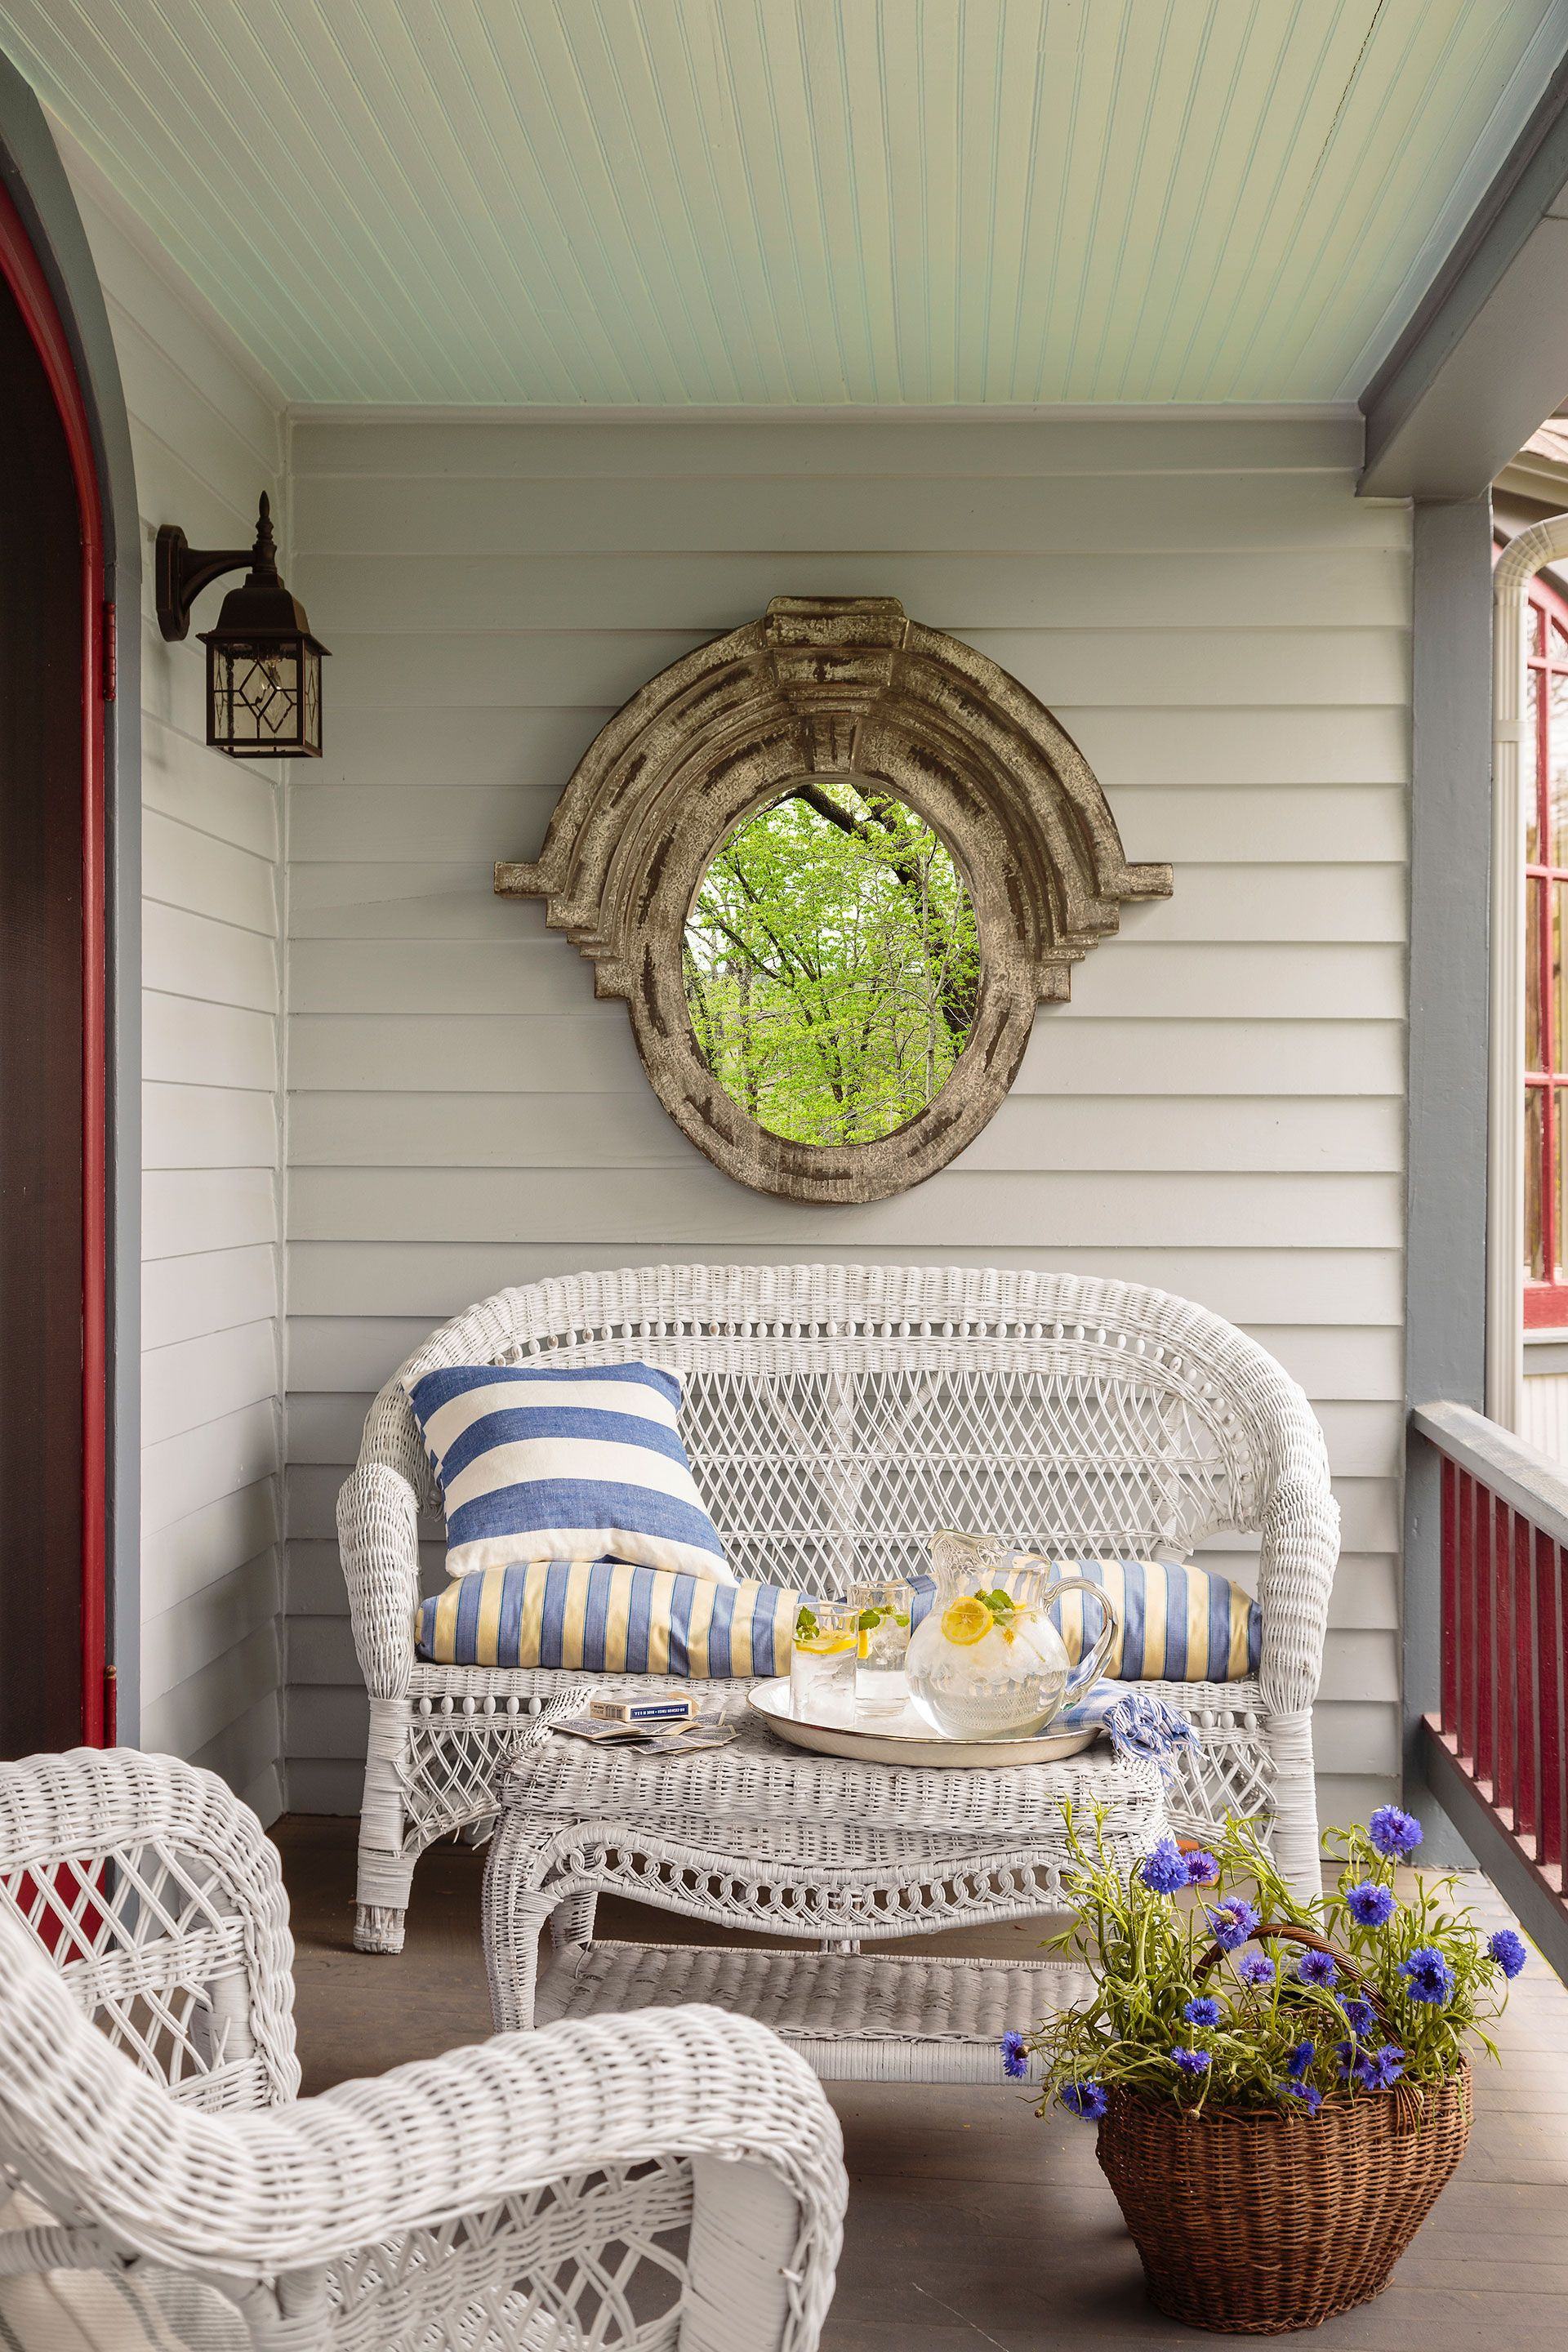 Vintage style white wicker furniture on a front porch with dramatic Old World mirror. #frontporch #decoratingideas #wicker #furniture